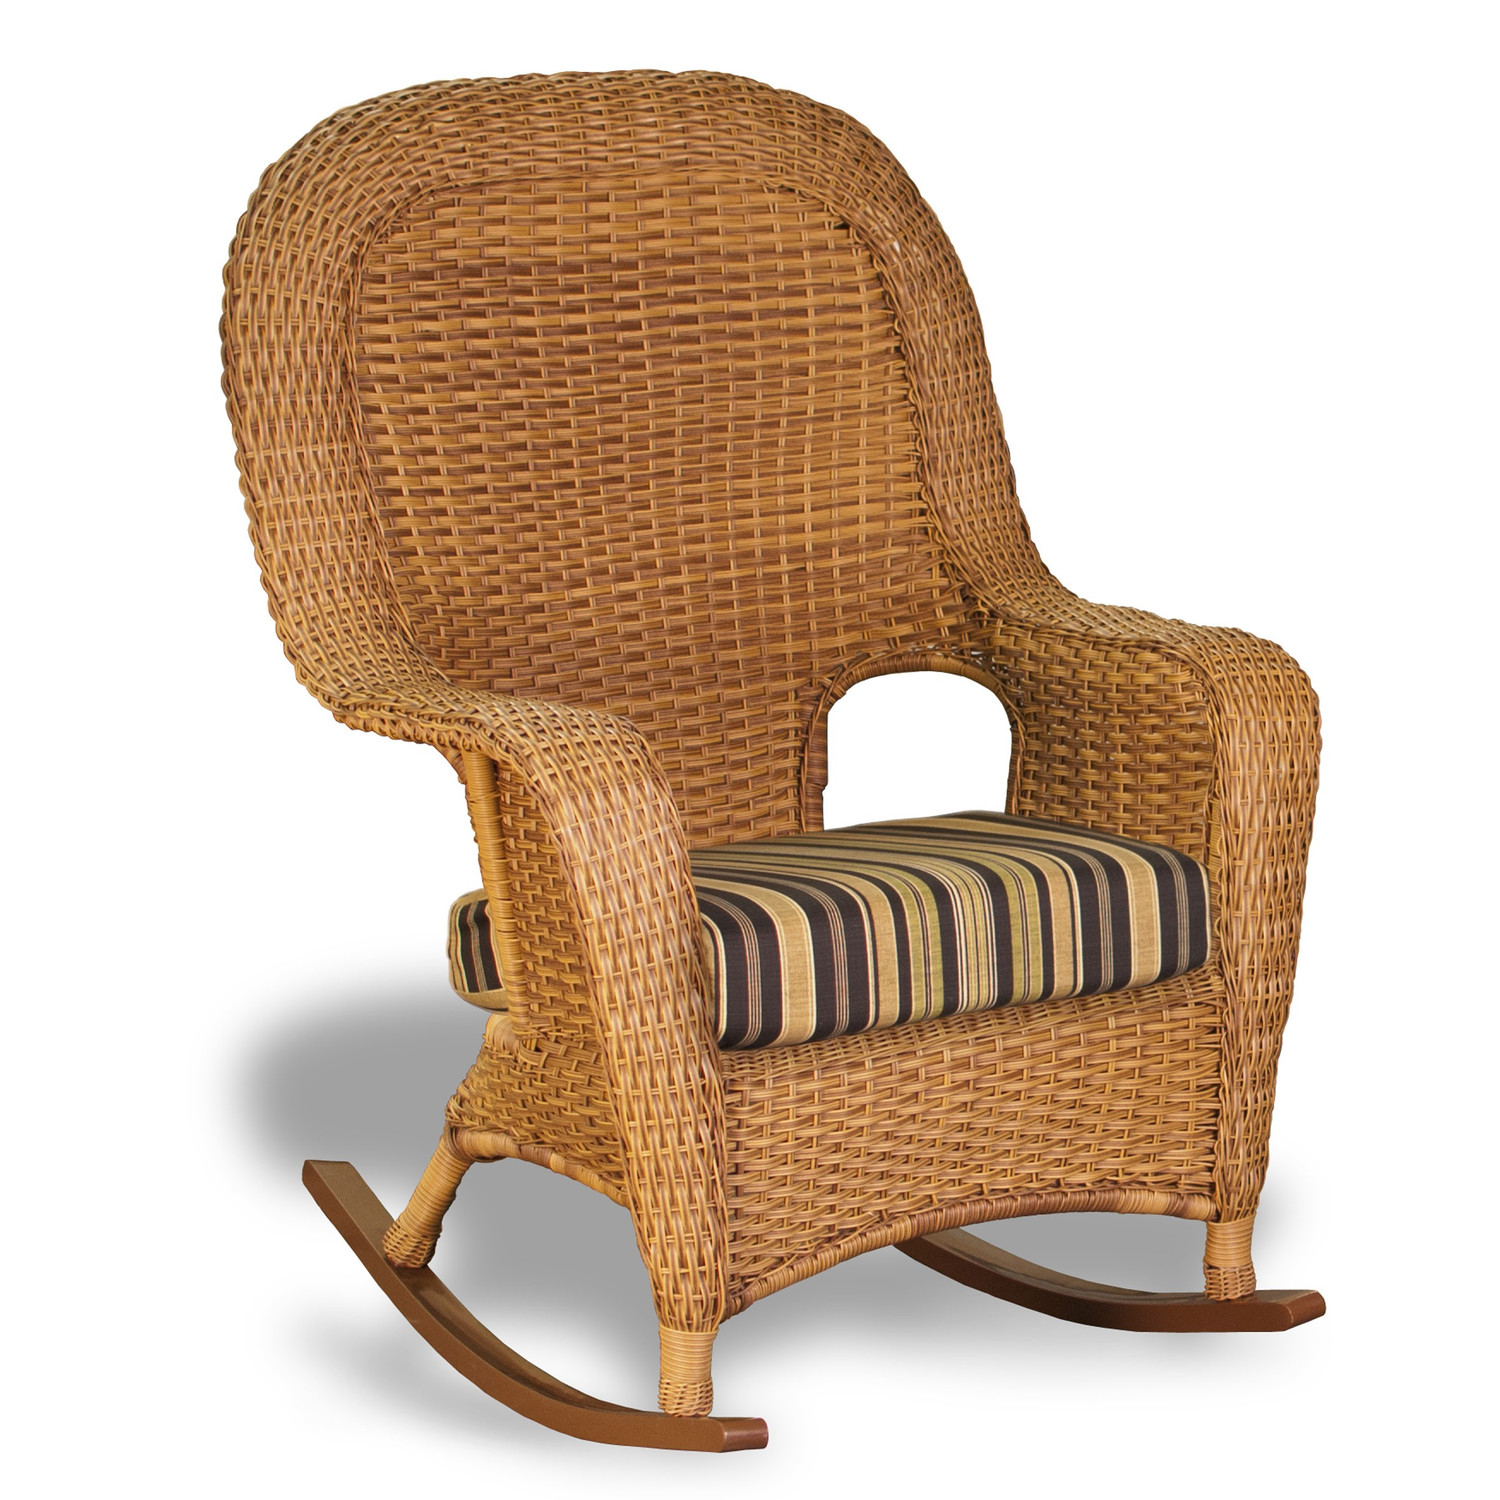 Wicker Furniture Natural Textures